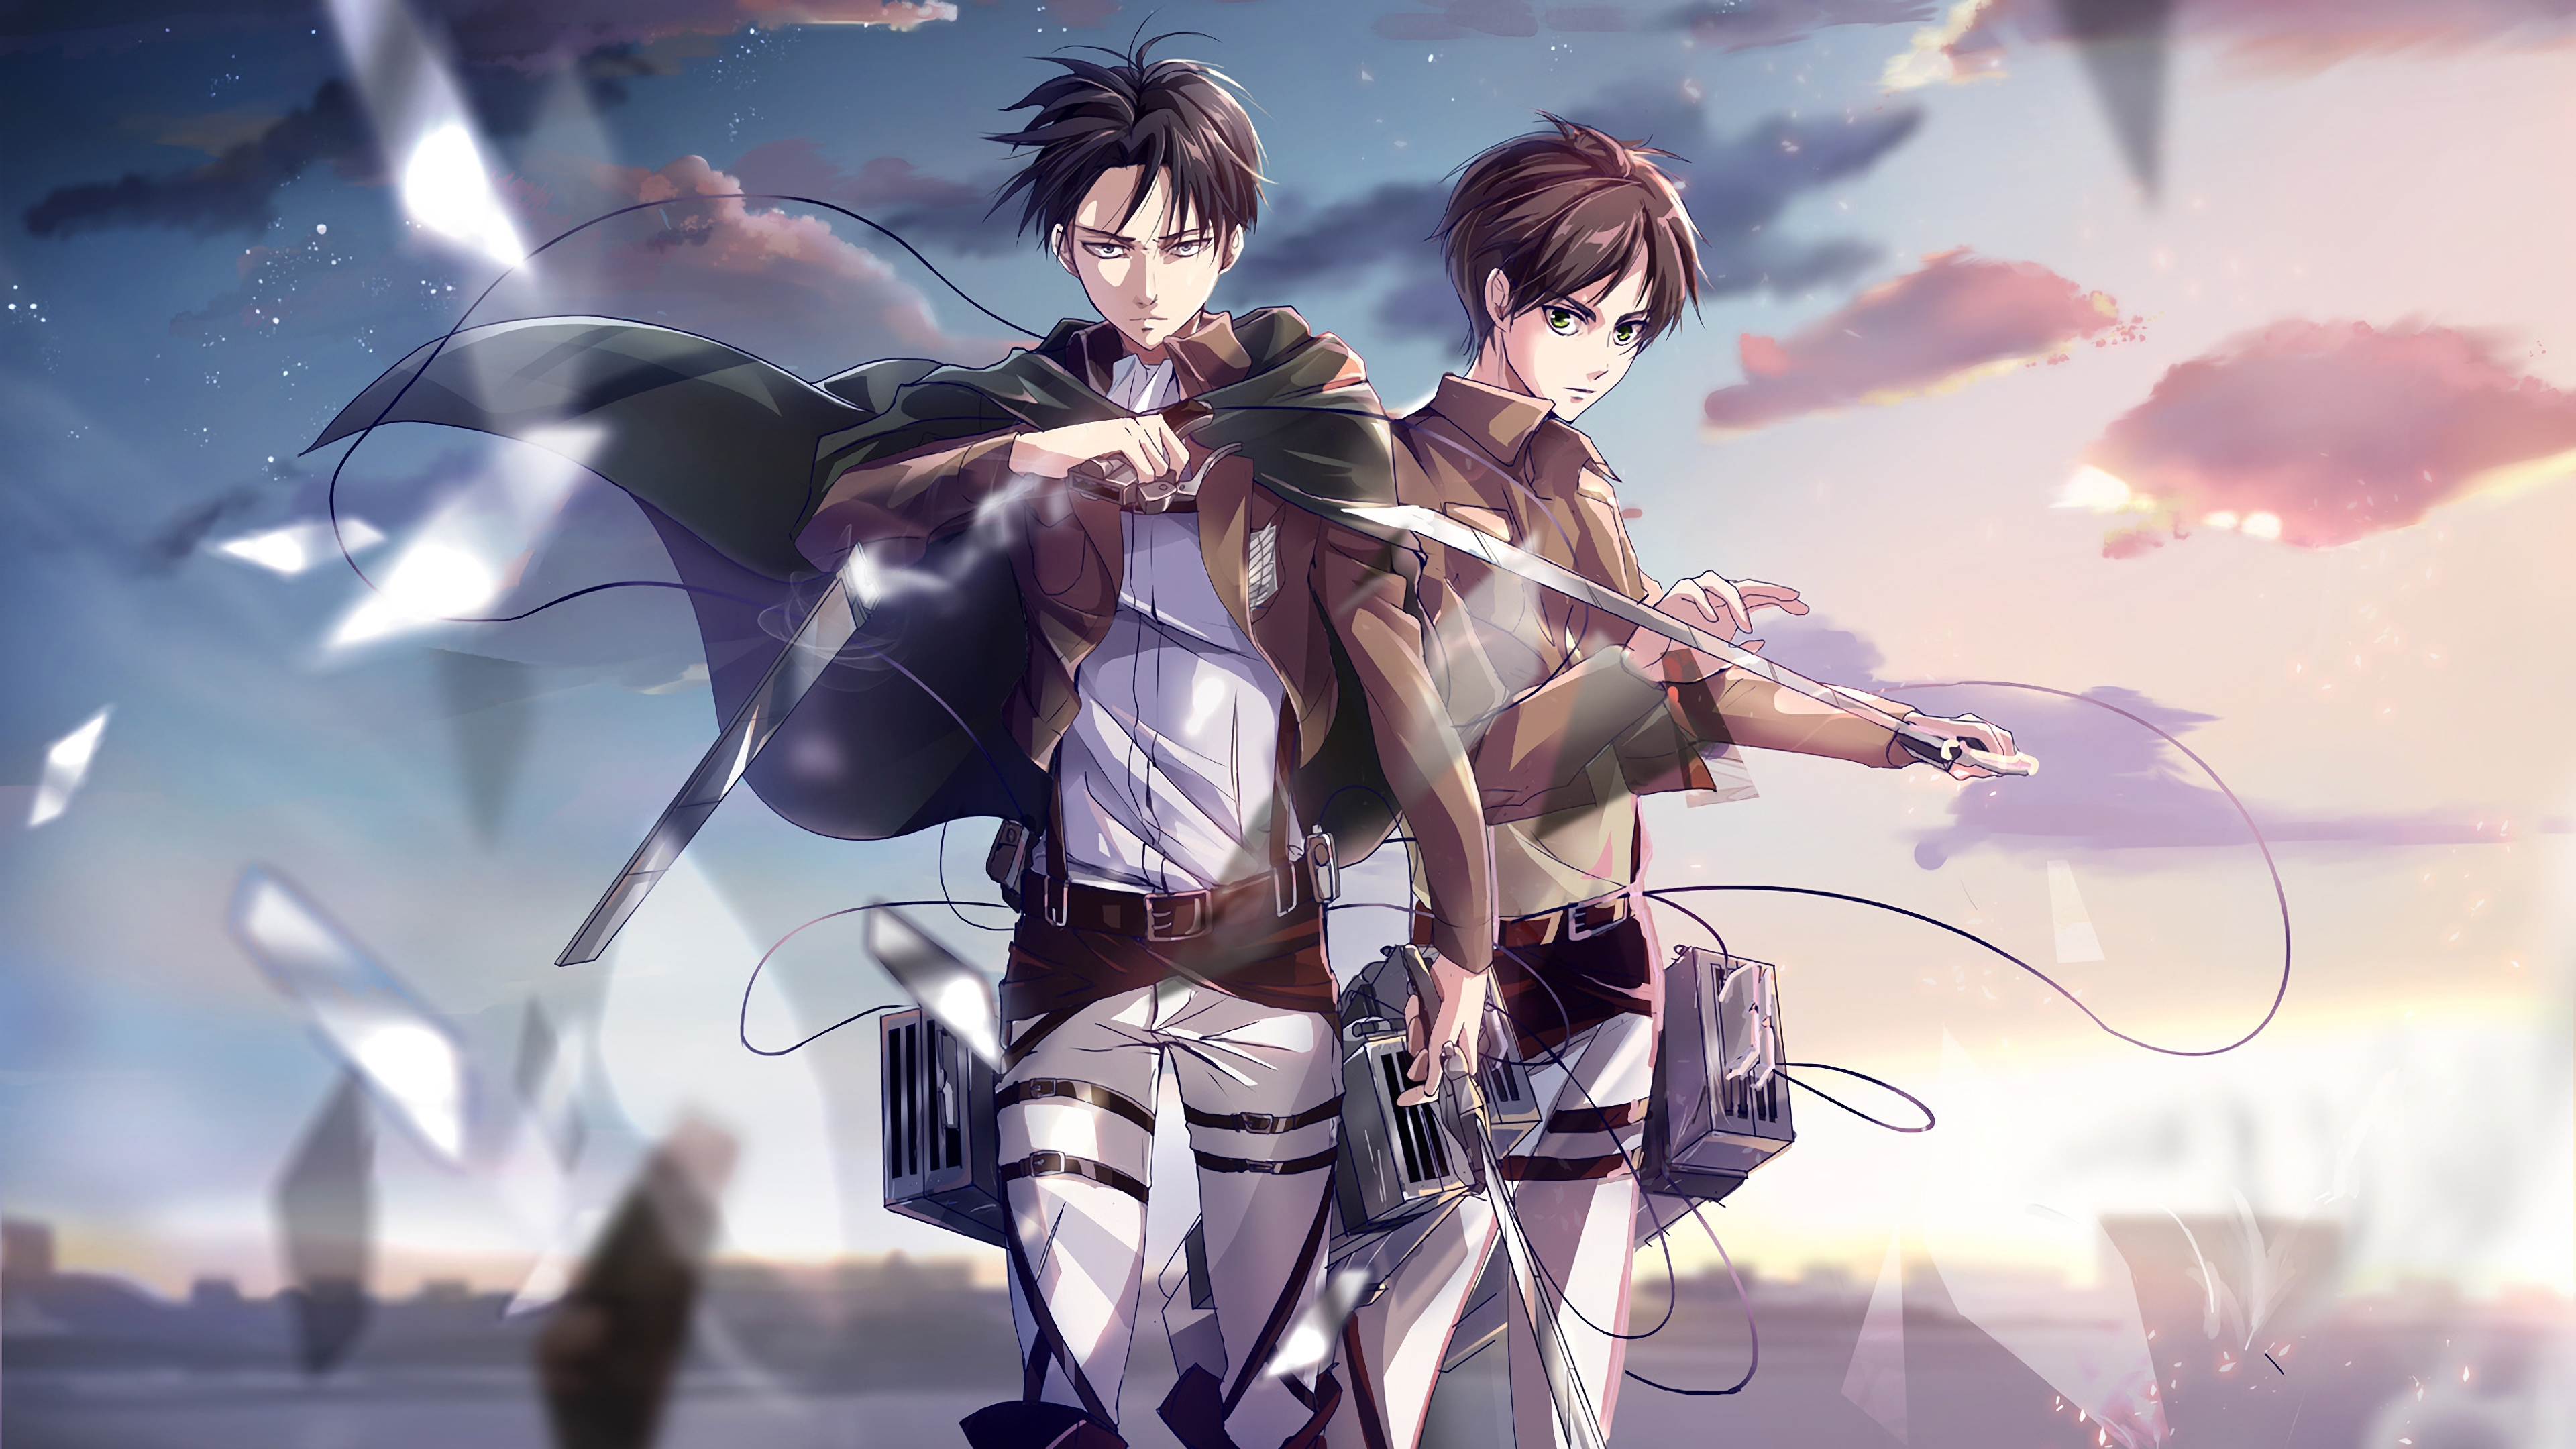 Attack On Titan 4k Ultra Hd Wallpaper Background Image 3840x2160 Id 937873 Wallpaper Abyss